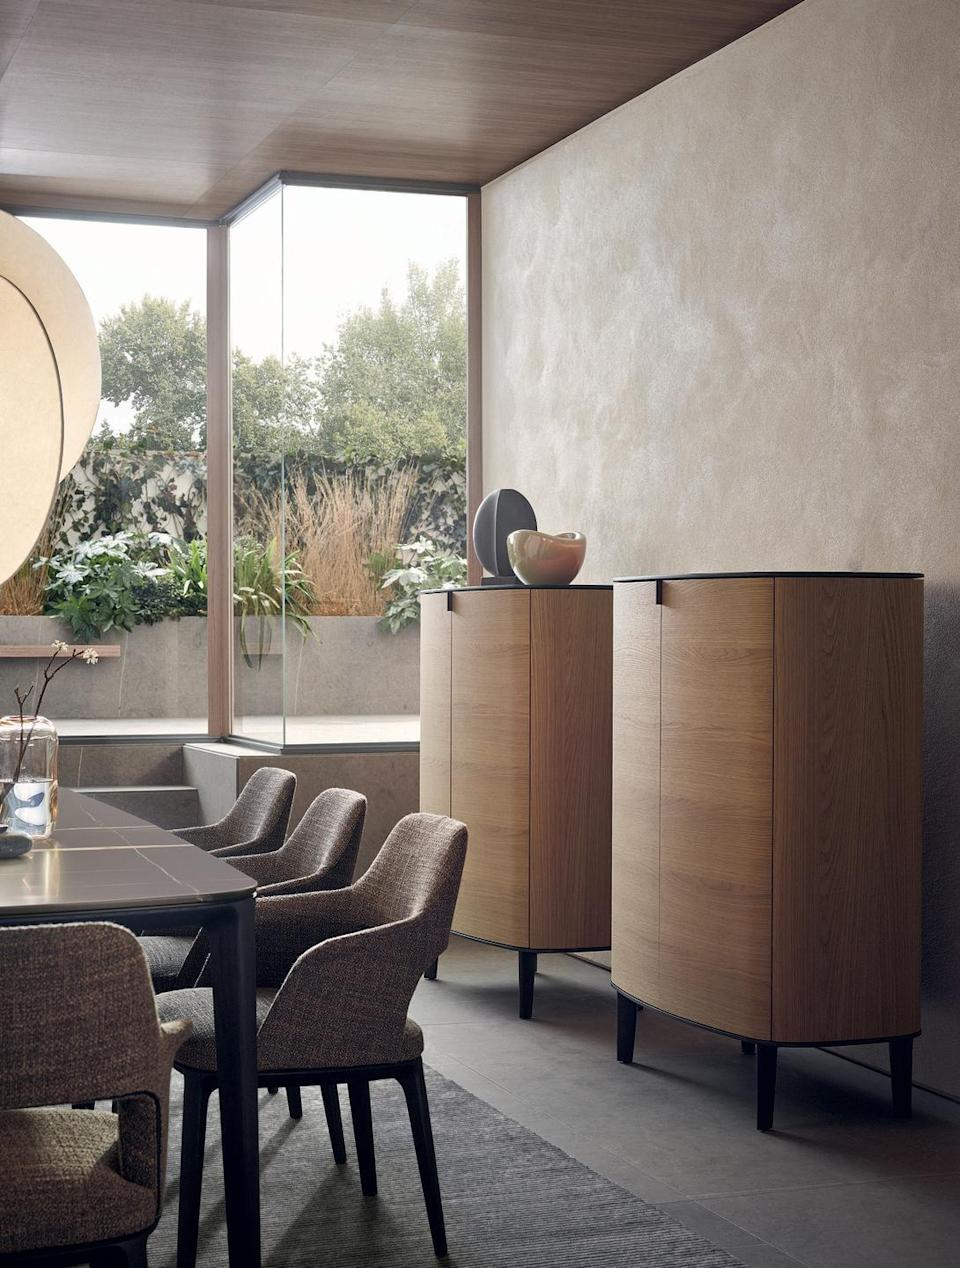 """<p>Symphony is a collection of sideboards where the simplicity of the lines is expressed through fine materials and accurate workmanship. The sideboards have an elliptical shape, enhanced by the wood finish.</p><p>Discover the Collection: <a href=""""https://www.poliform.it/en/products/symphony/"""" rel=""""nofollow noopener"""" target=""""_blank"""" data-ylk=""""slk:poliform.com"""" class=""""link rapid-noclick-resp"""">poliform.com </a></p>"""